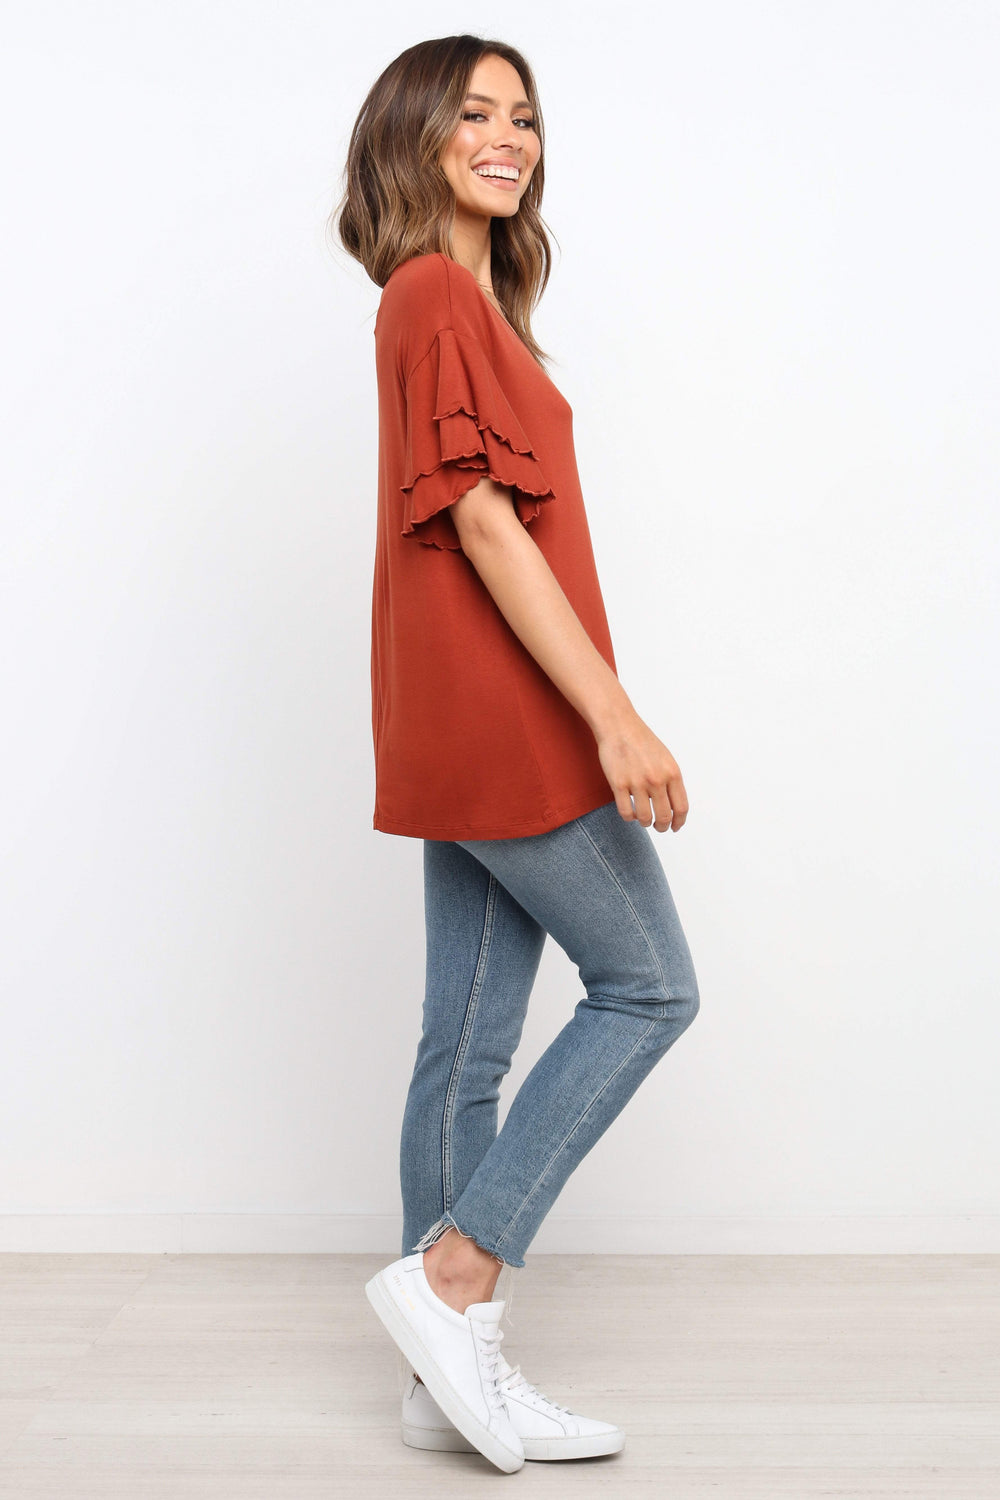 TOPS ***Searcy Top - Rust (RRP $39.95)